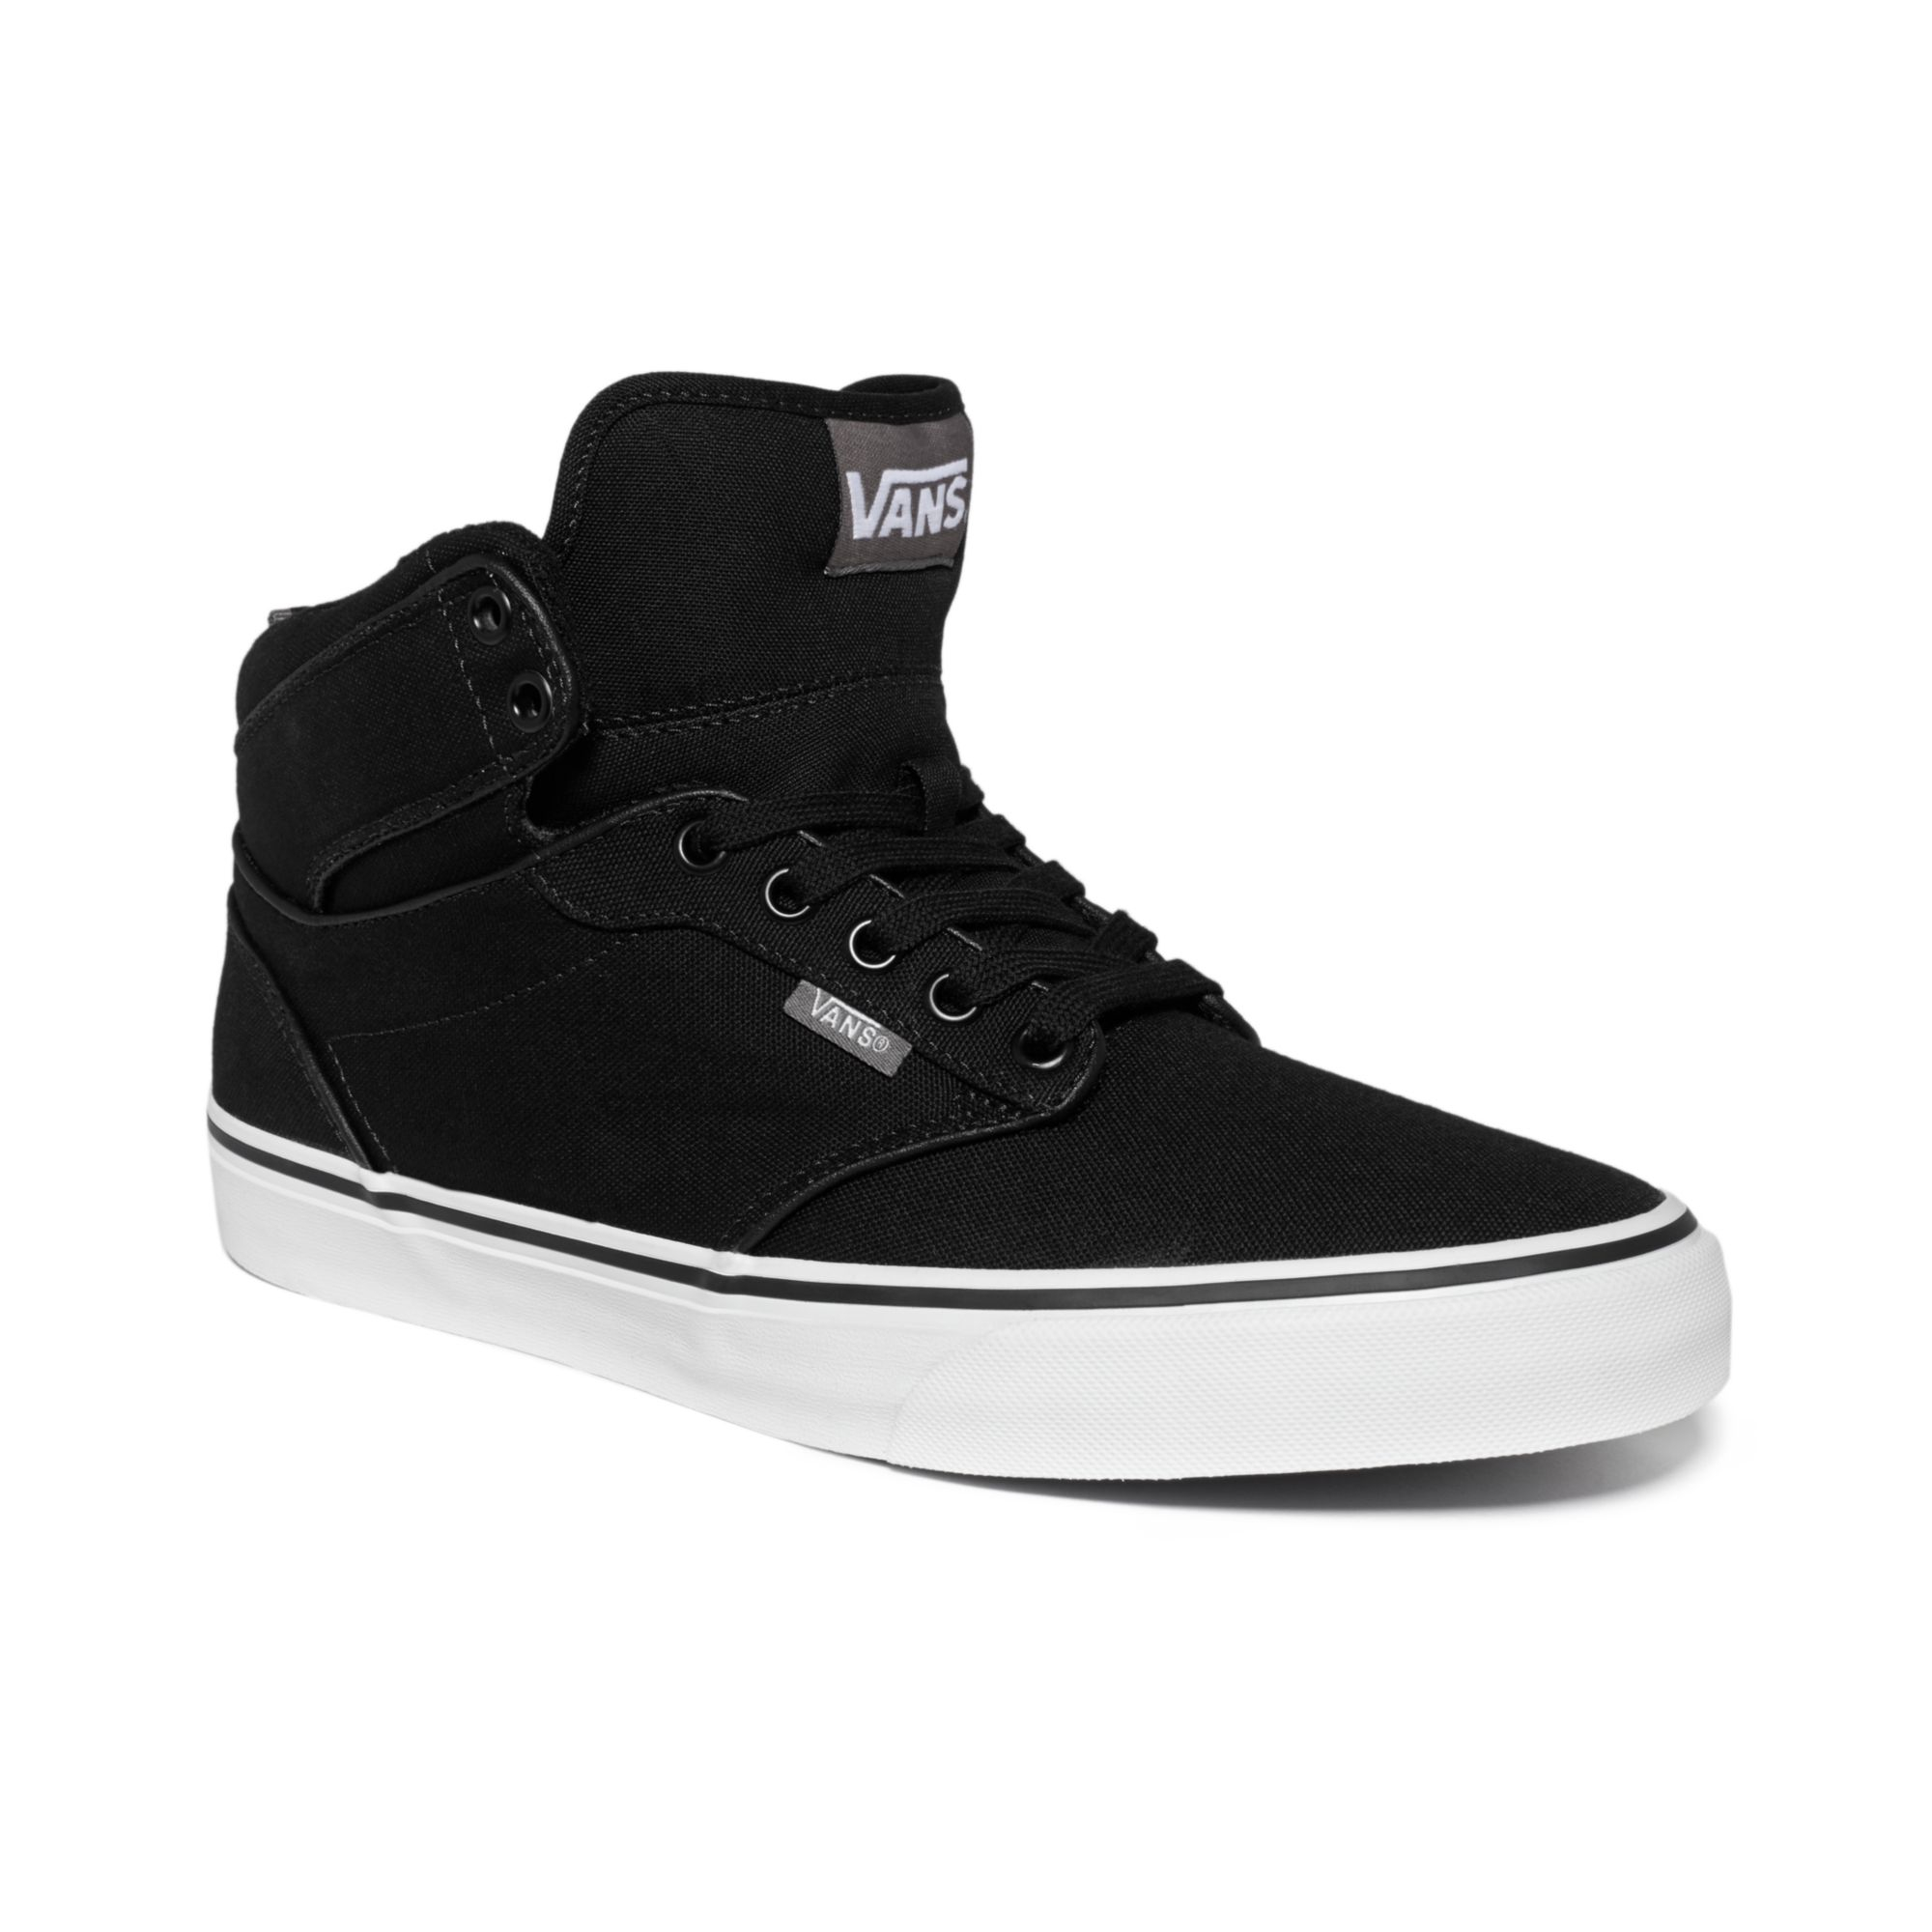 Vans Atwood Shoes Black